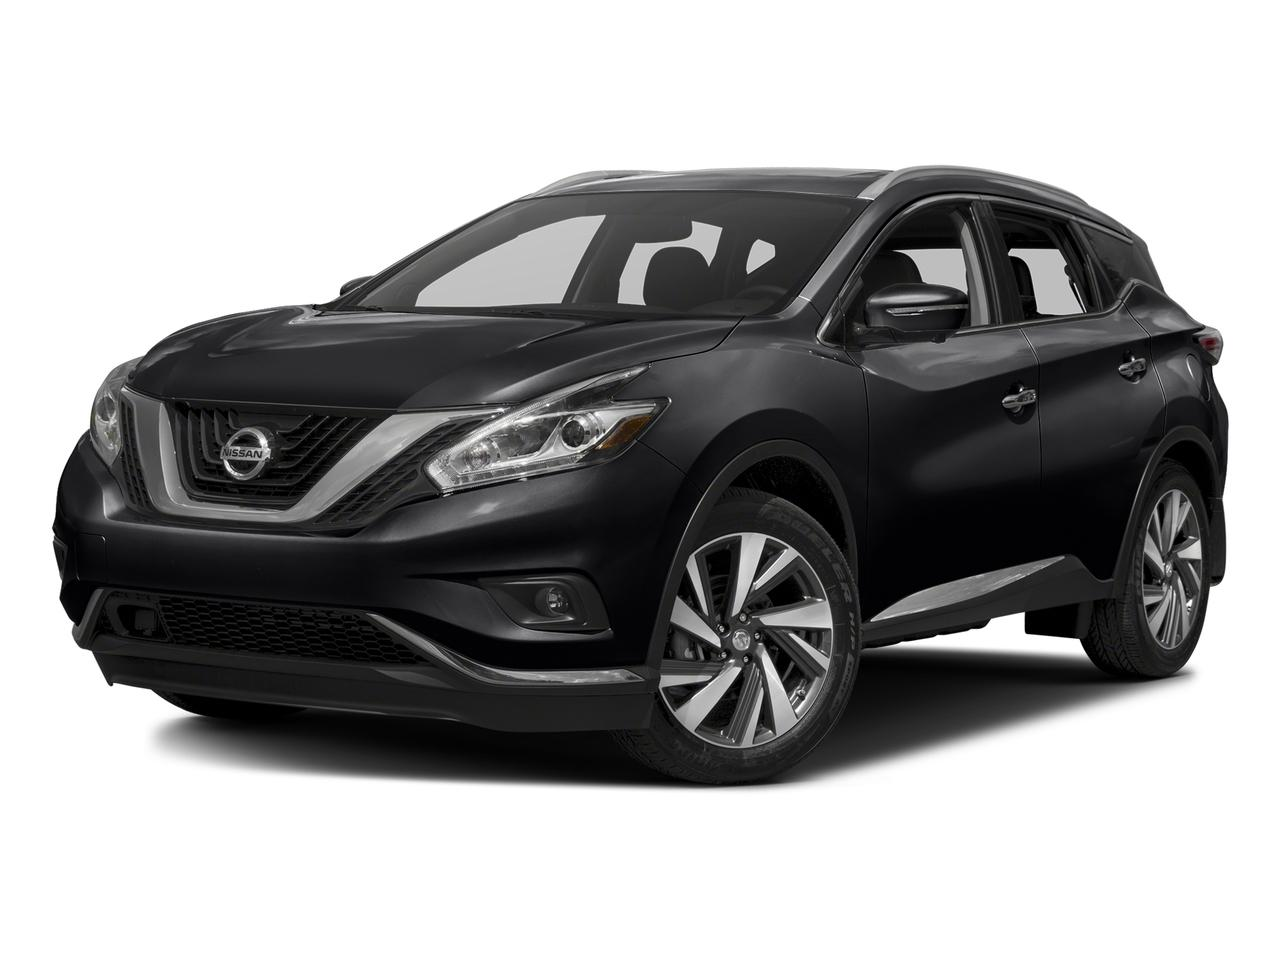 2016 Nissan Murano Vehicle Photo in Woodbridge, VA 22191